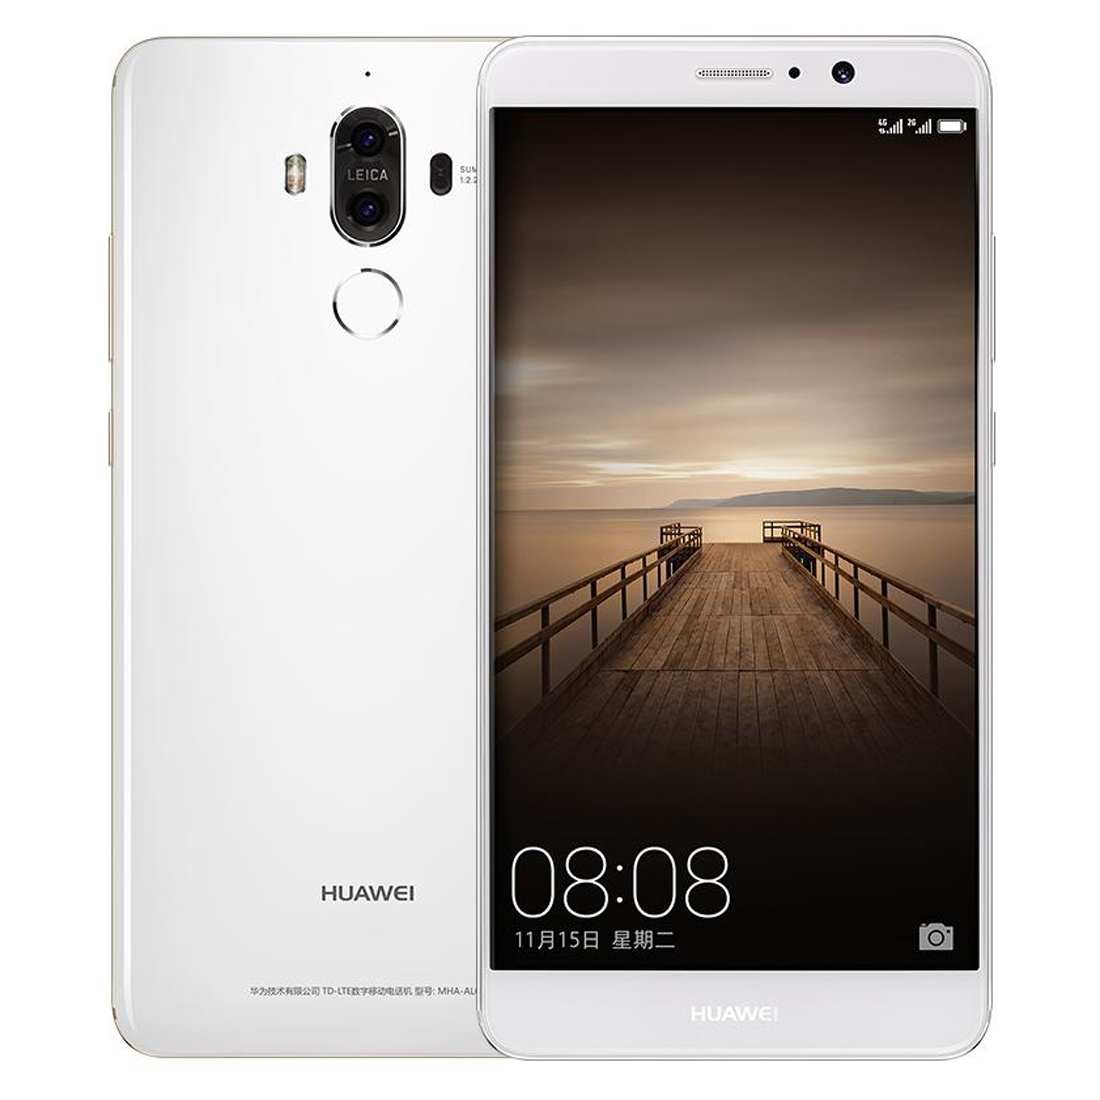 Huawei Huawei Mate 9, 4GB+64GB, WHITE